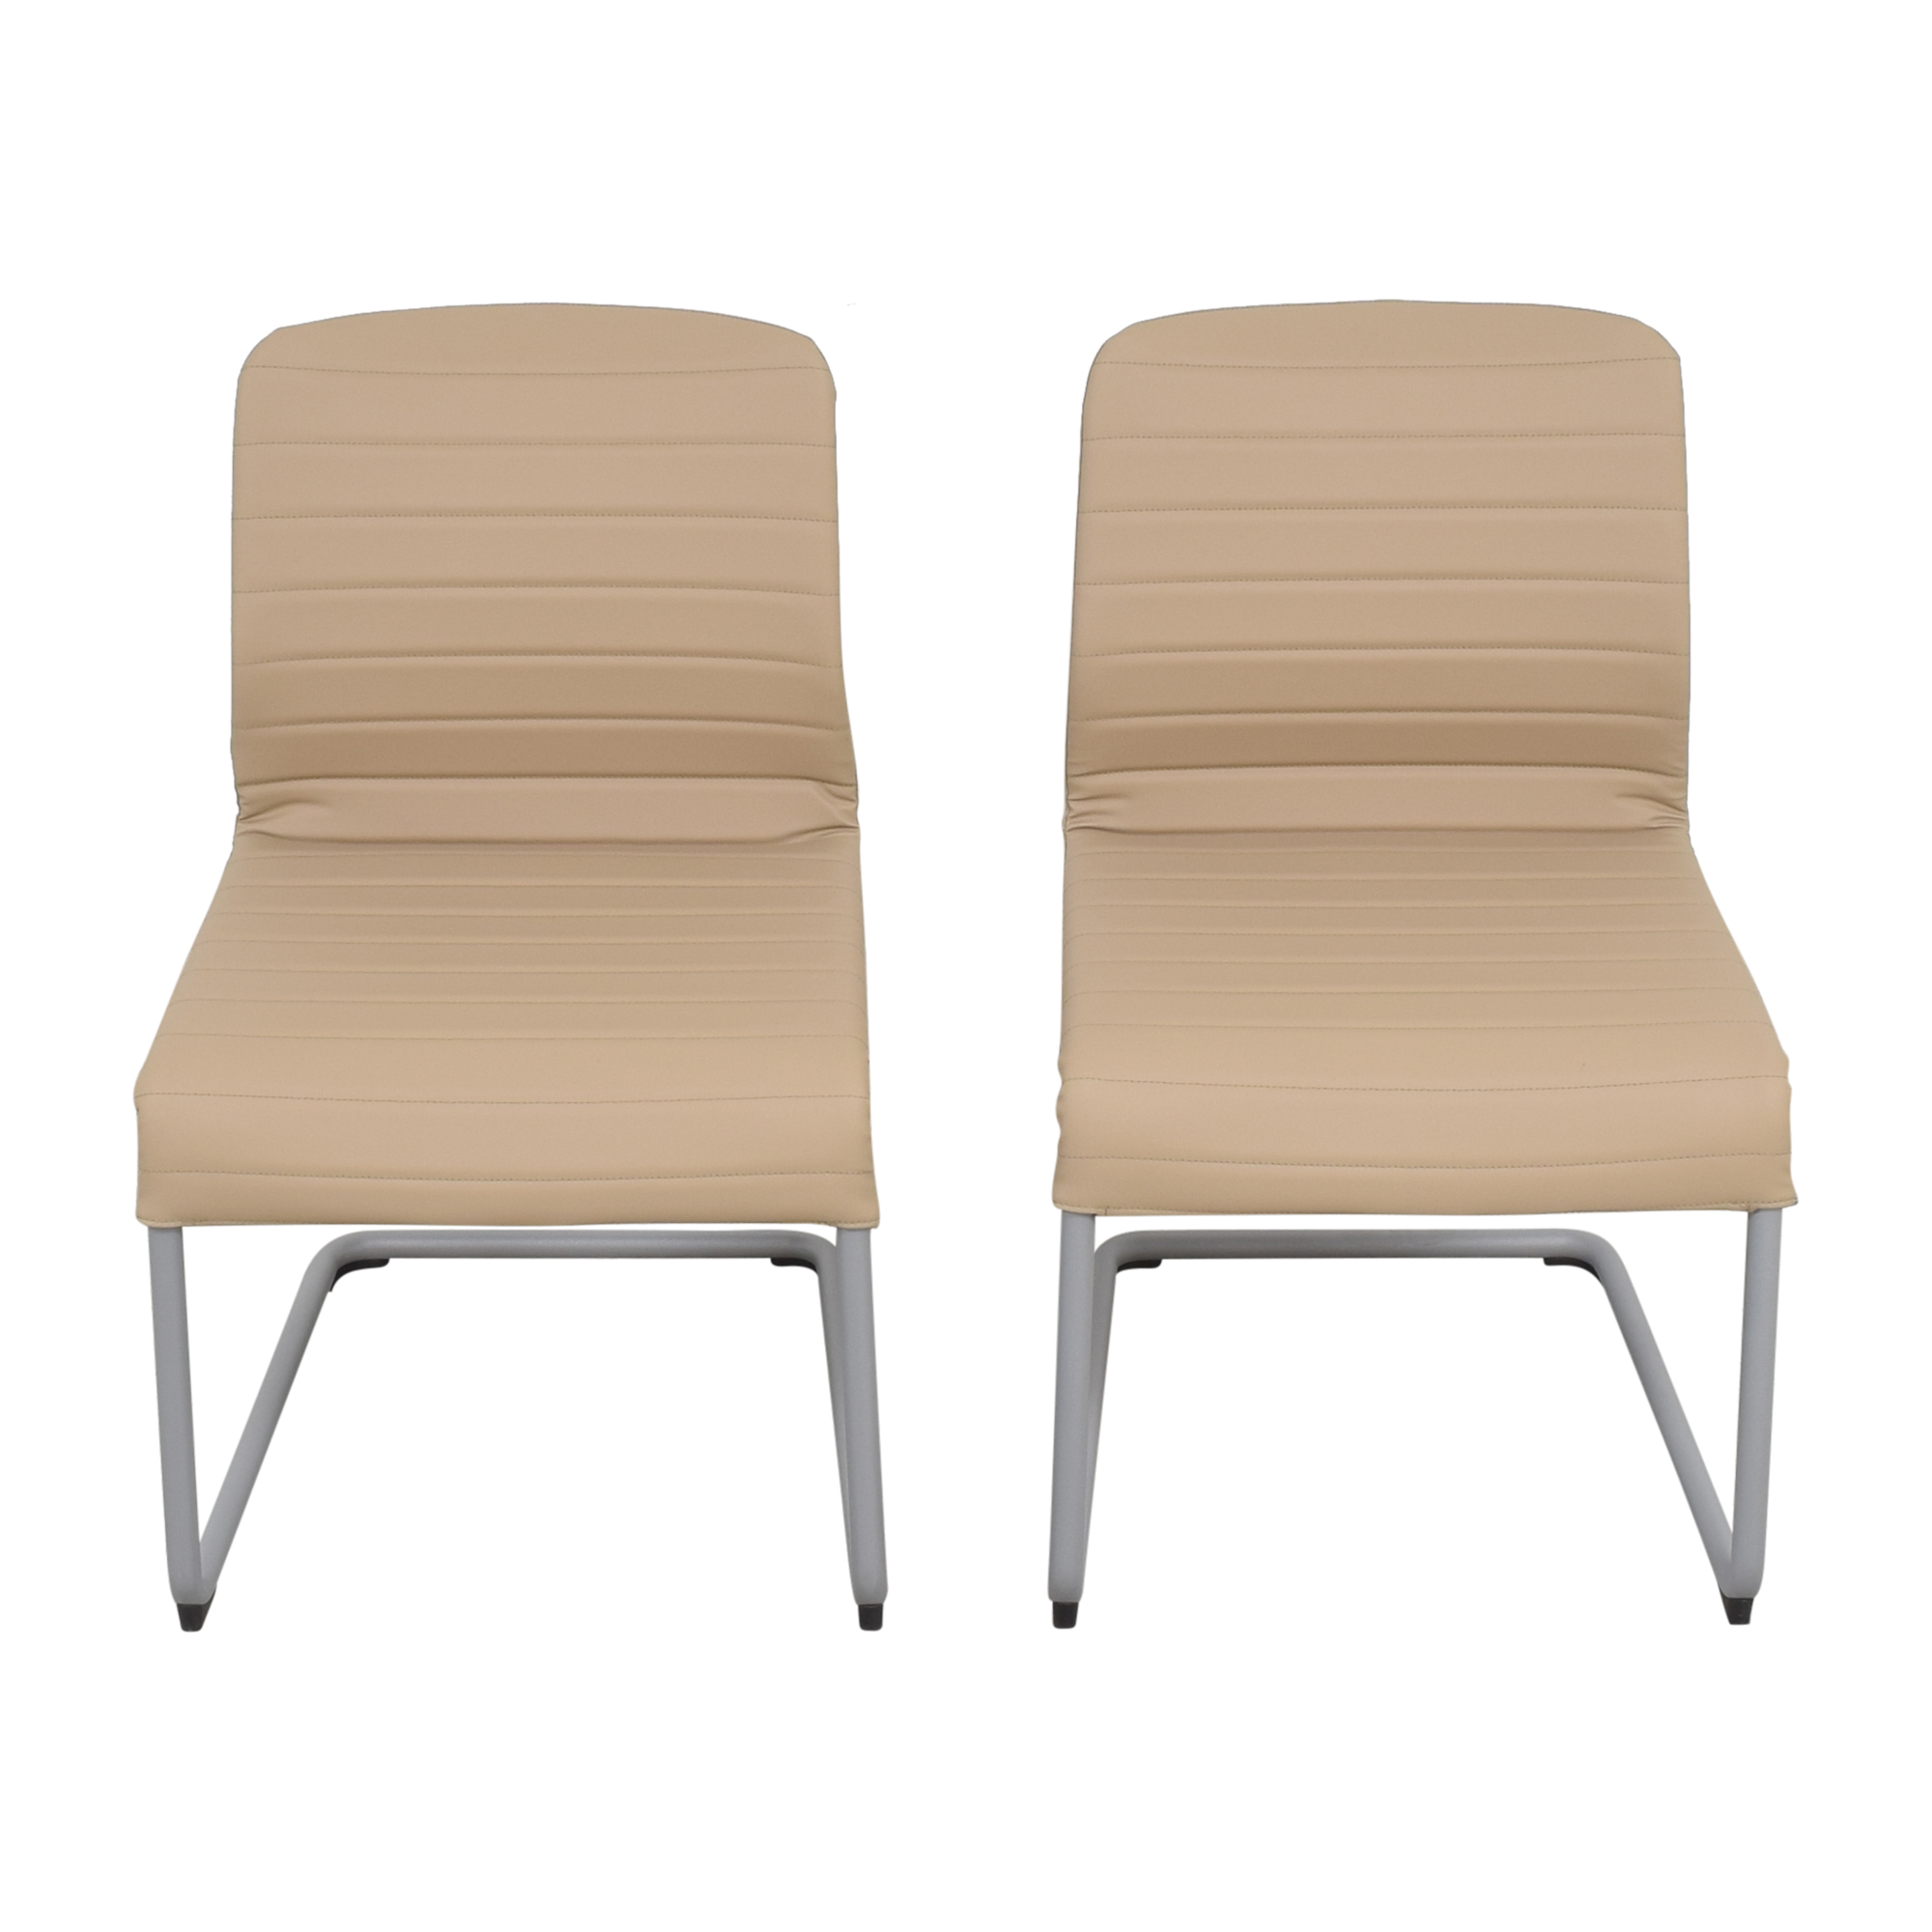 shop Global Furniture Group Global Furniture Group Lite Cantilever Frame Side Chairs online